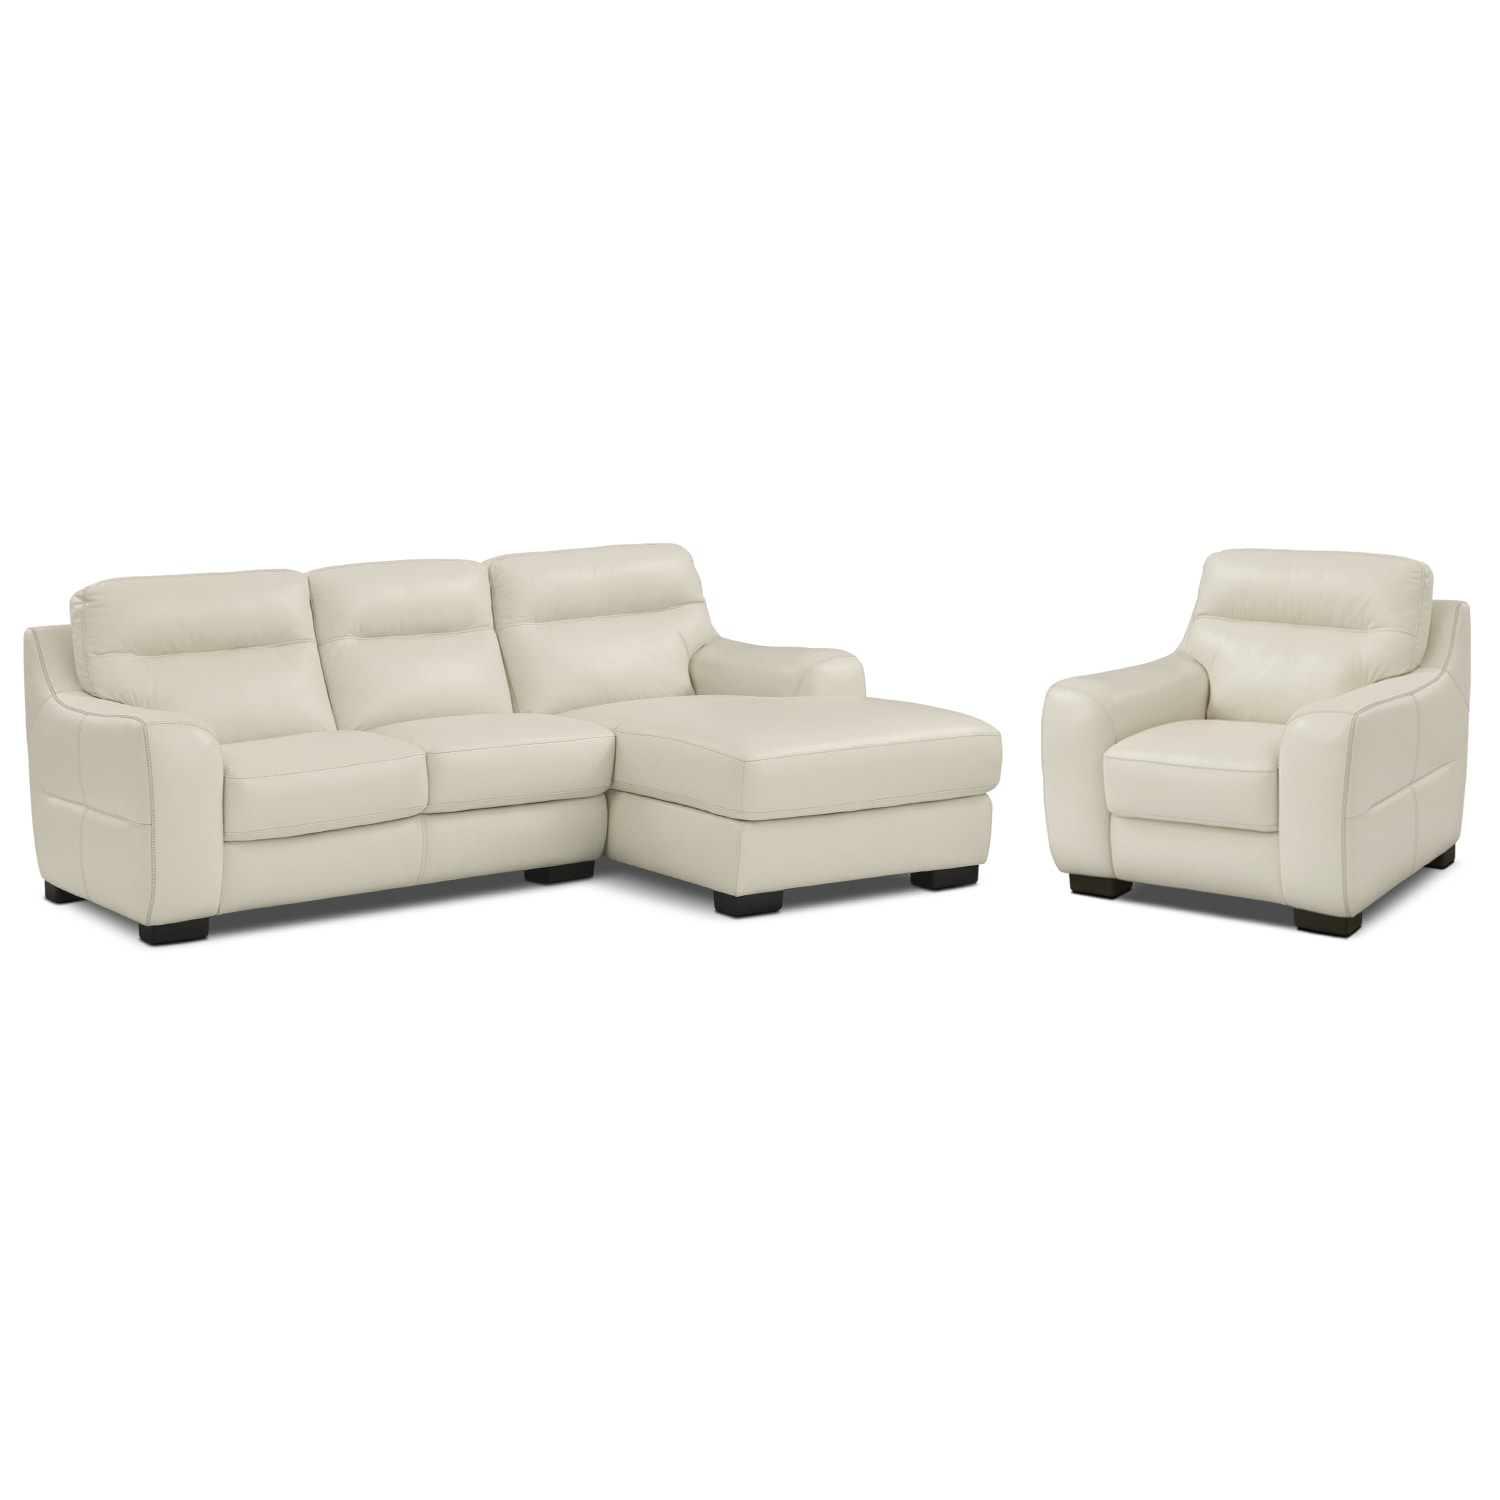 Living Room Furniture - Rocco Snow 2 Pc. Right-Facing Chaise Sectional and Chair